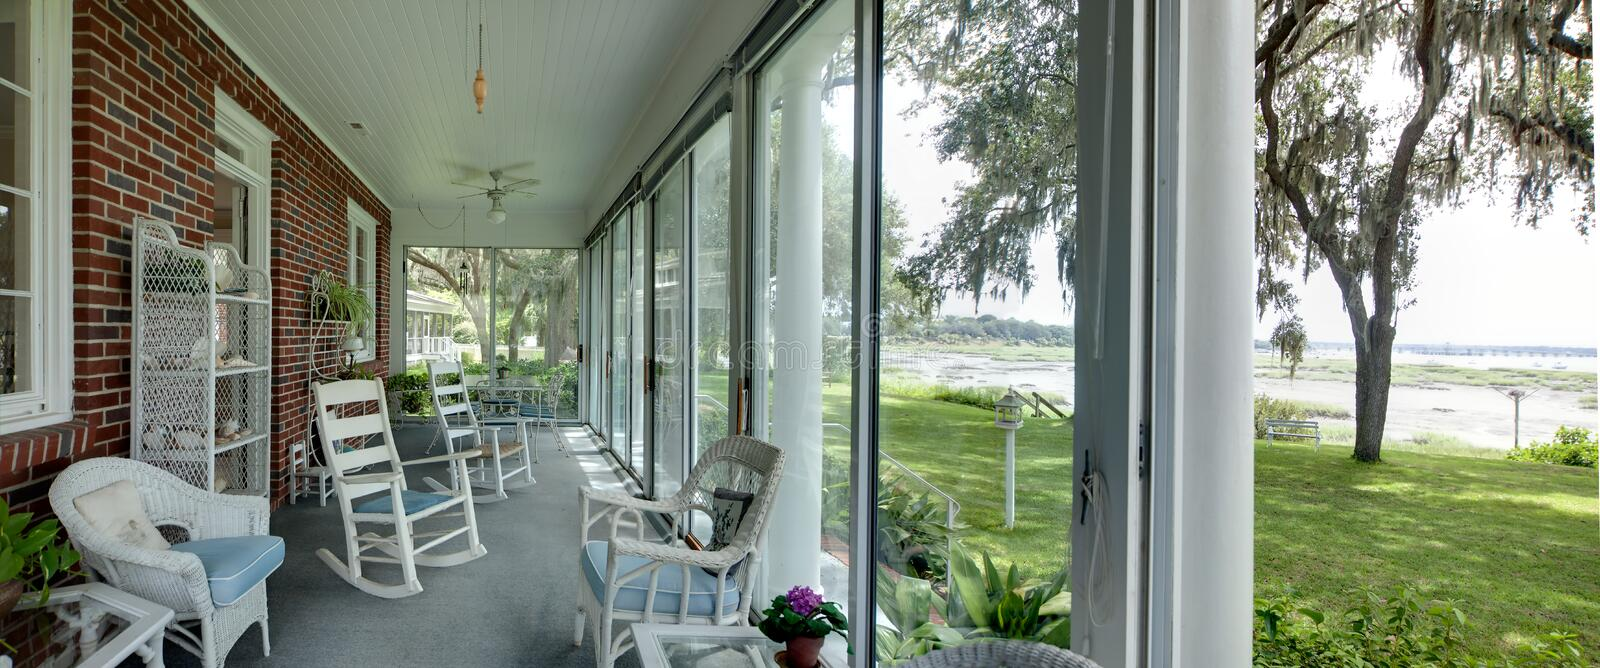 Panorama of porch with view royalty free stock image